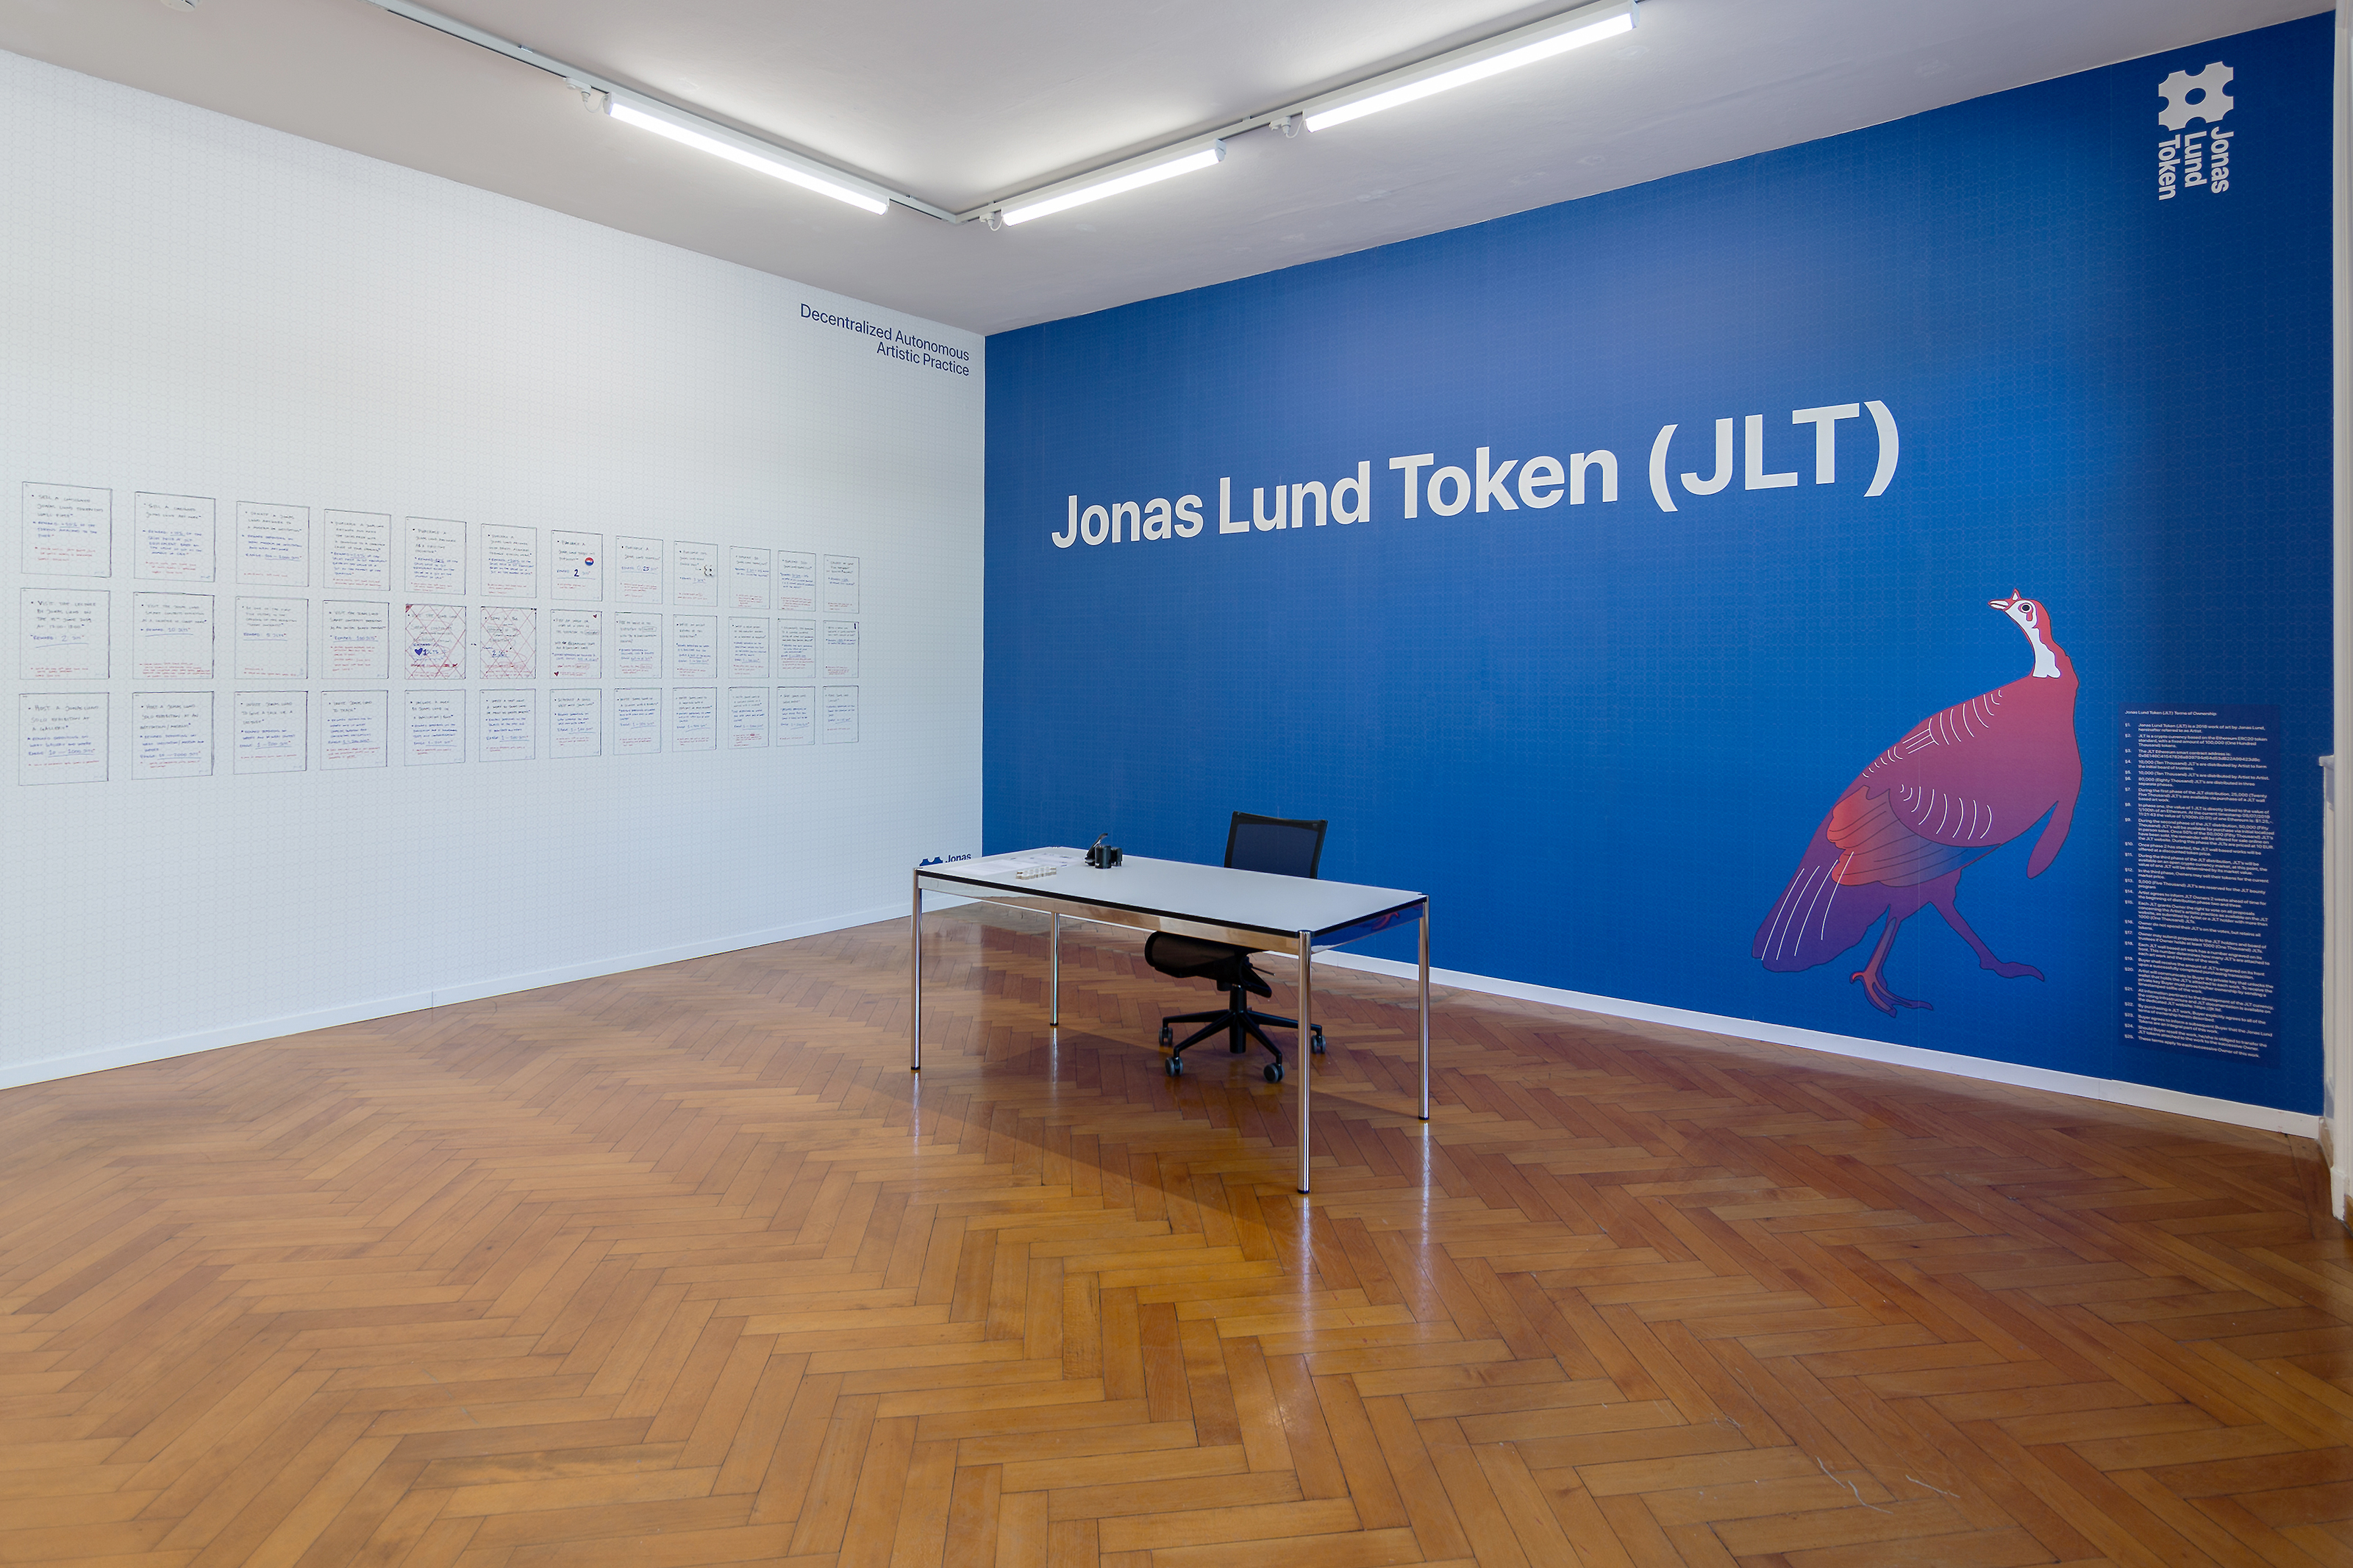 Jonas Lund Smart Contracts